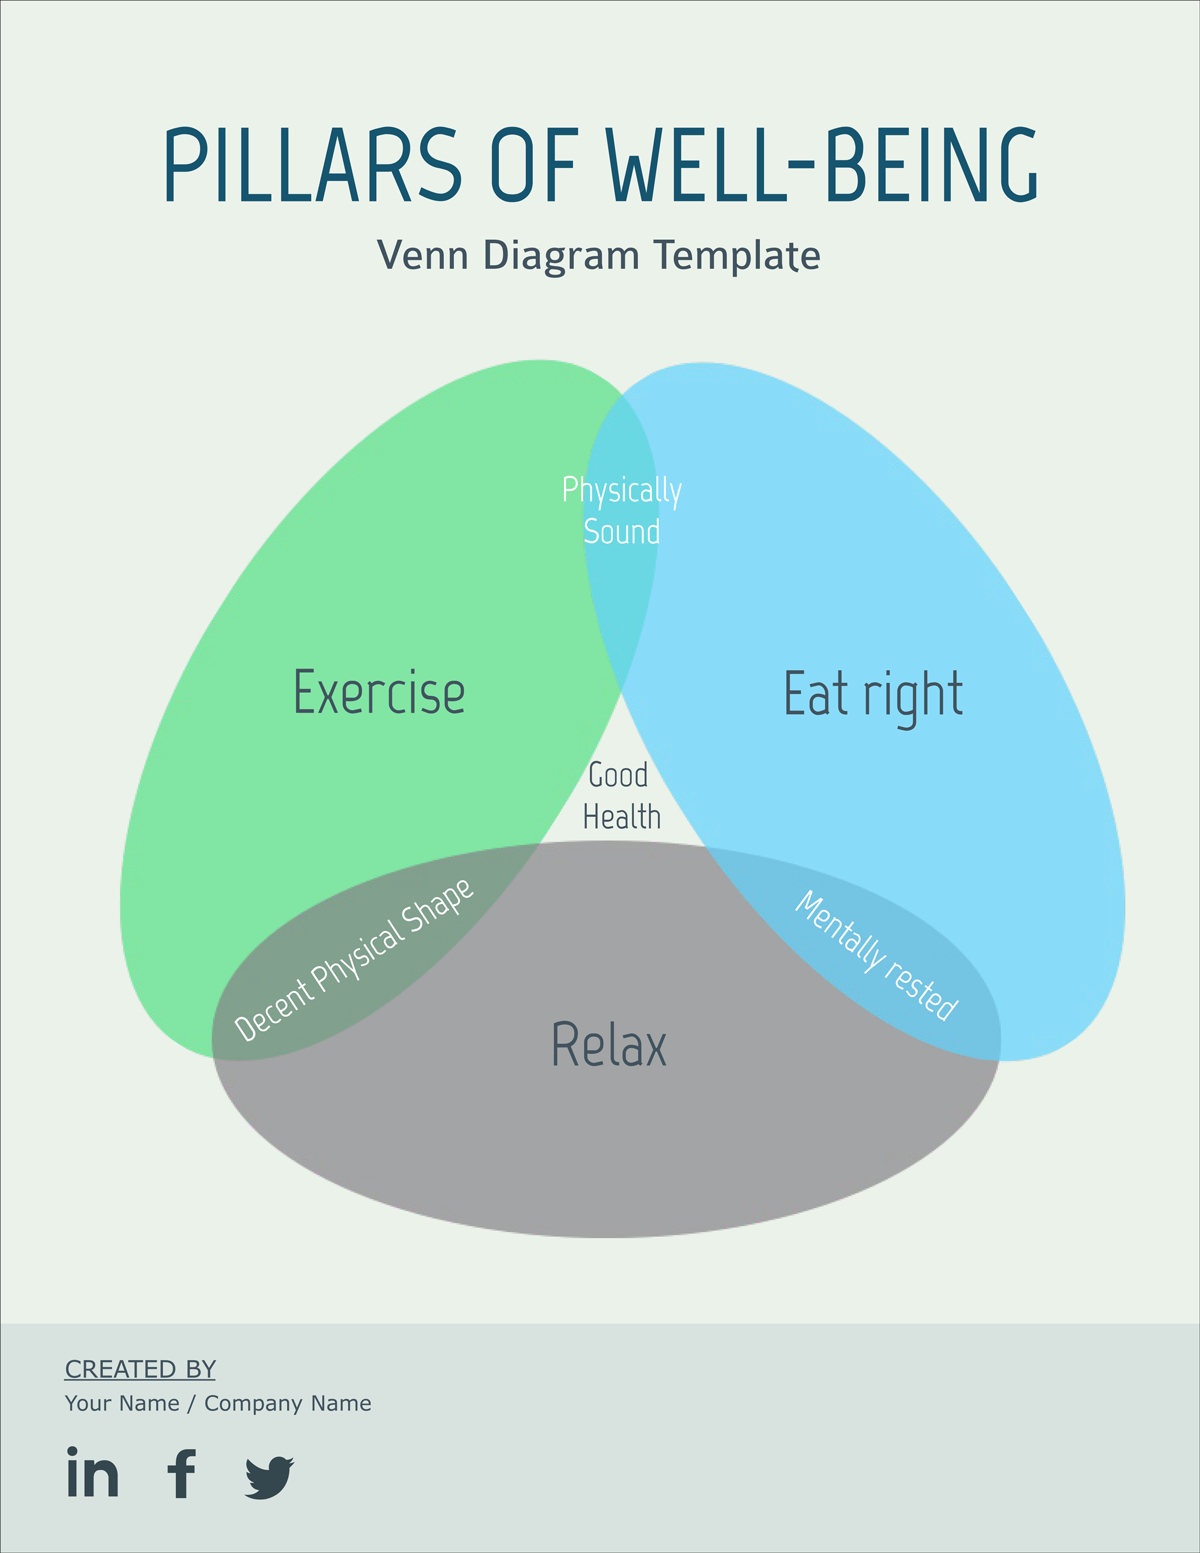 How To Create A Venn Diagram In Word Free Venn Diagram Template Edit Online And Download Visual